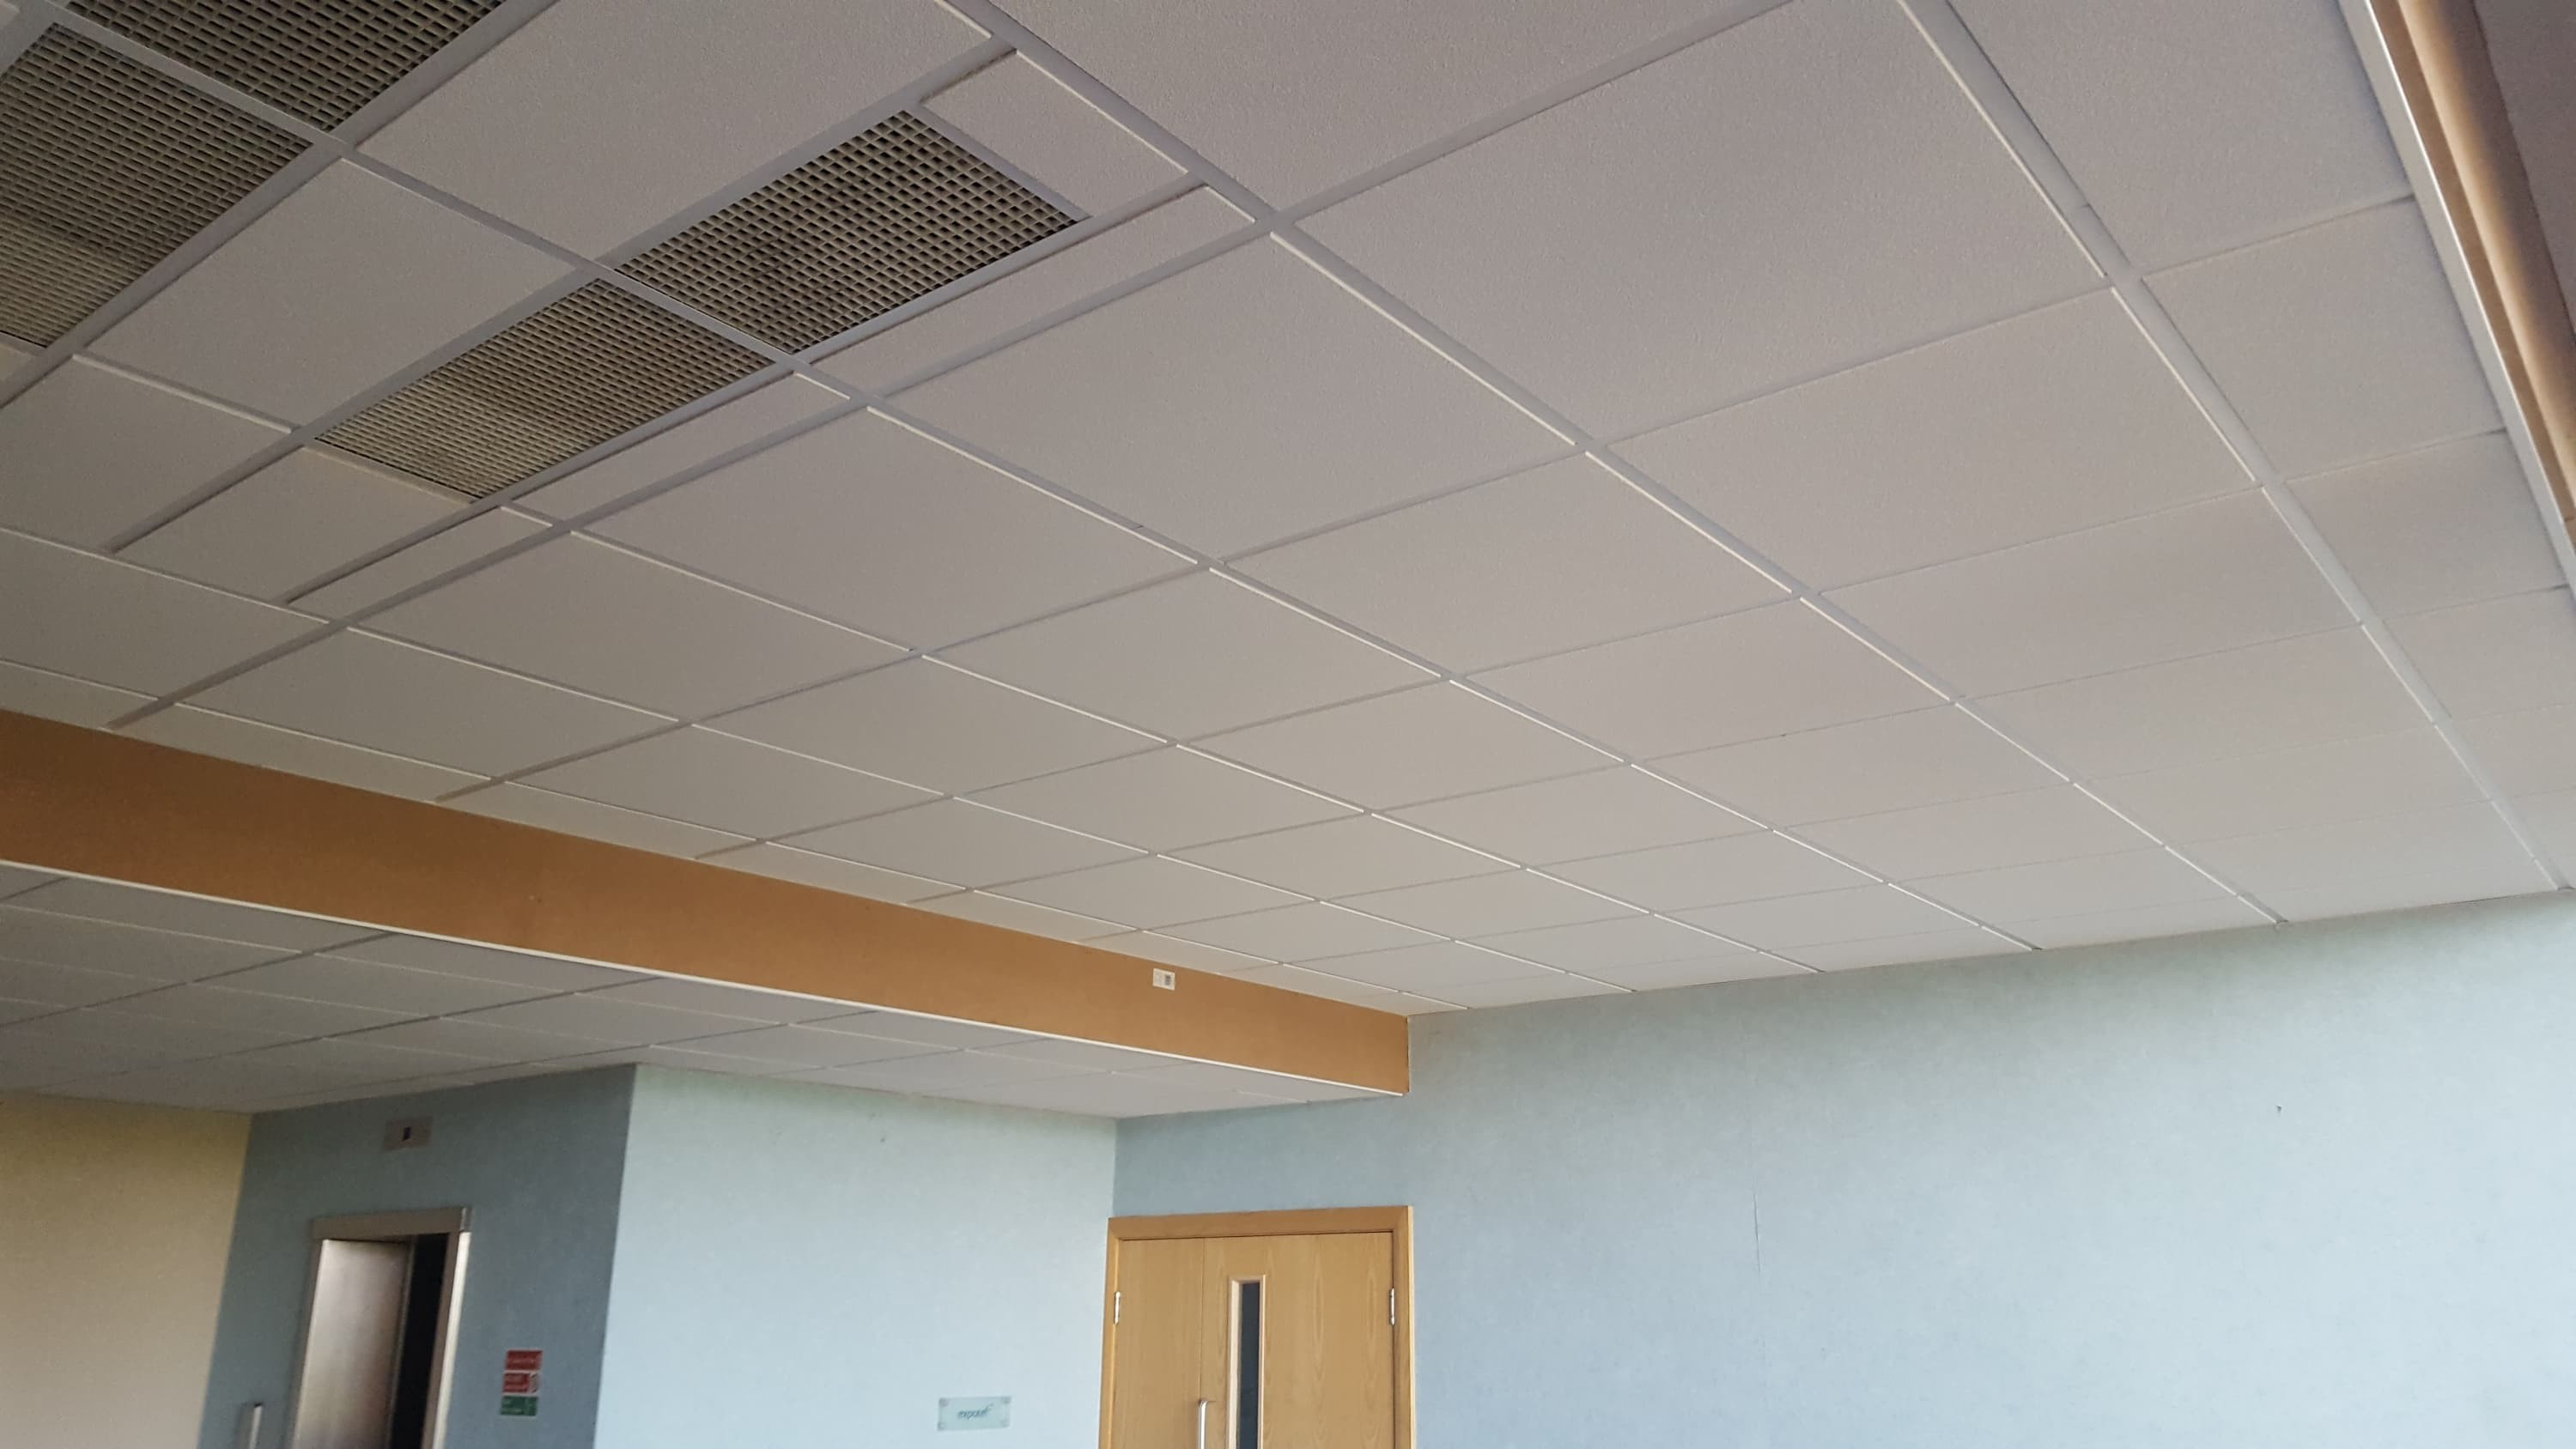 Armstrong tegular ceiling tiles choice image tile flooring armstrong ceiling tiles dune choice image tile flooring design ideas ceiling tiles manchester choice image tile dailygadgetfo Gallery